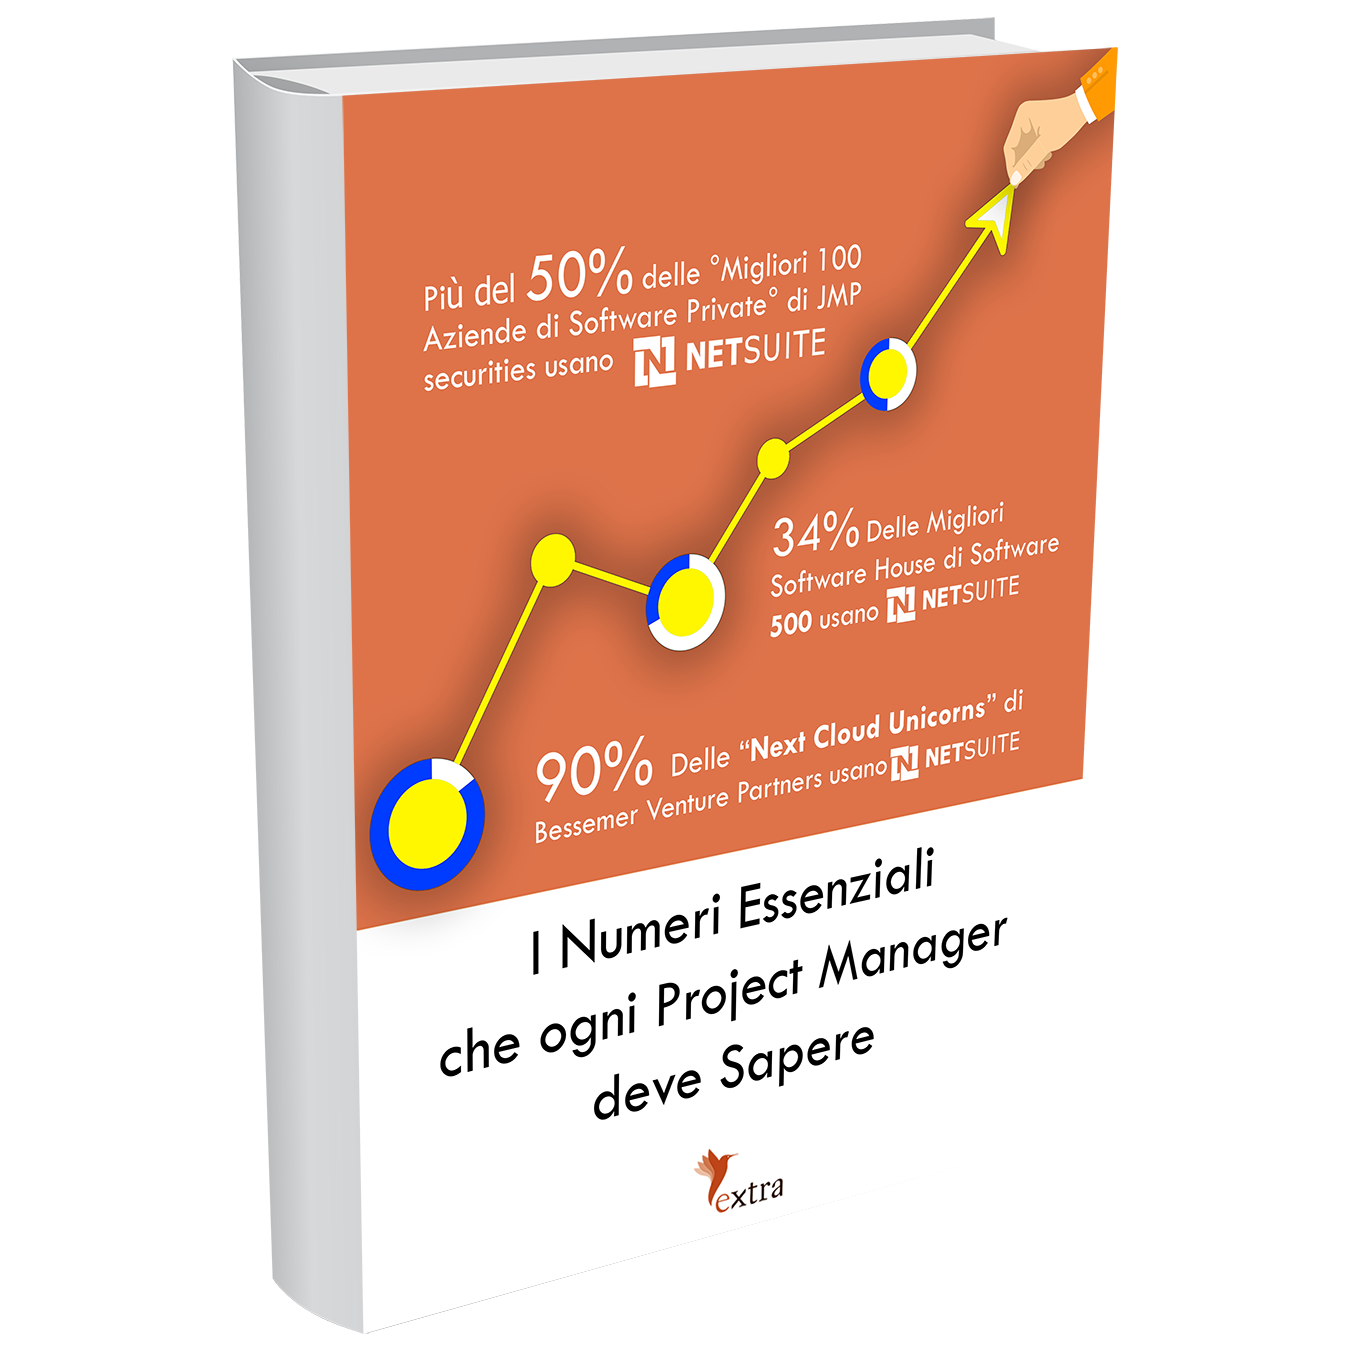 Future-proof your business_Essential Numbers for IT Project Managers_Italian book cover.png